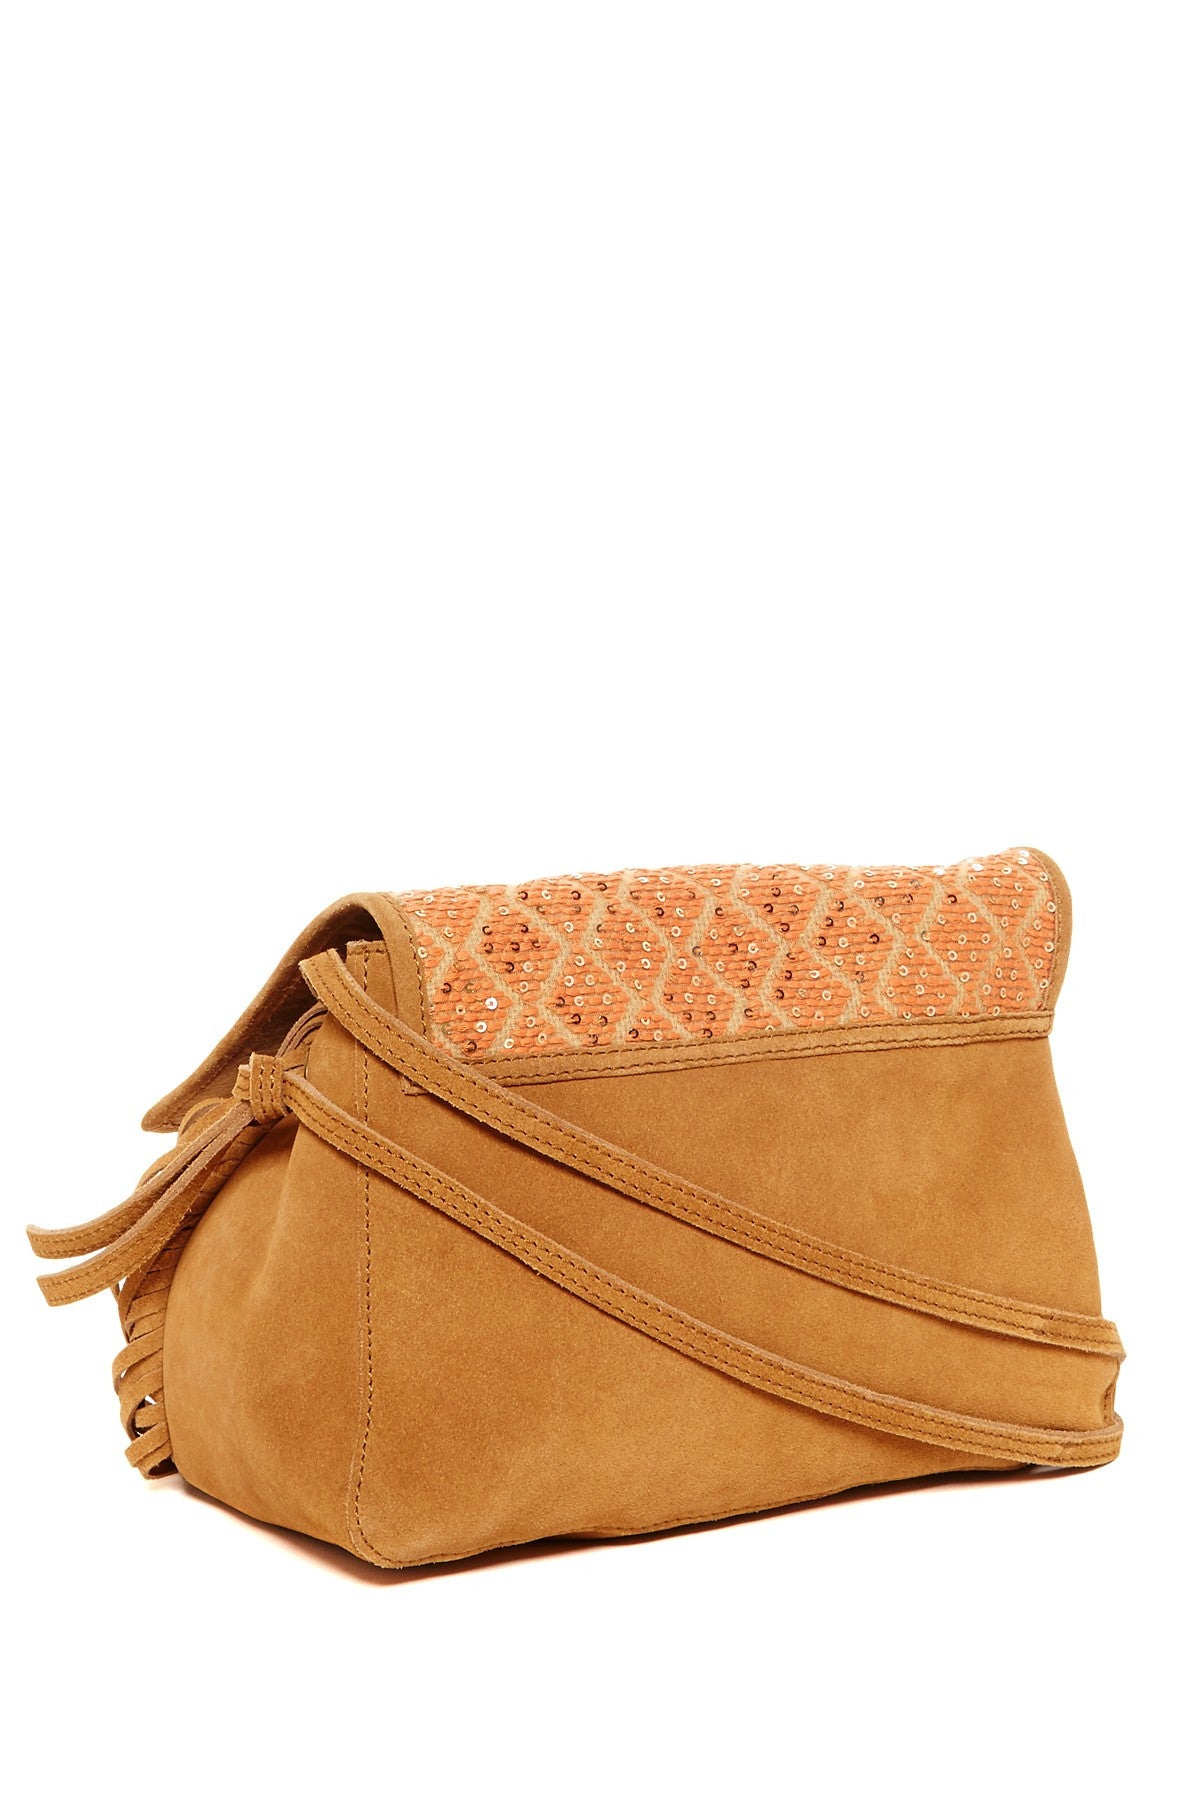 Emma Cross Body Bucket Bag